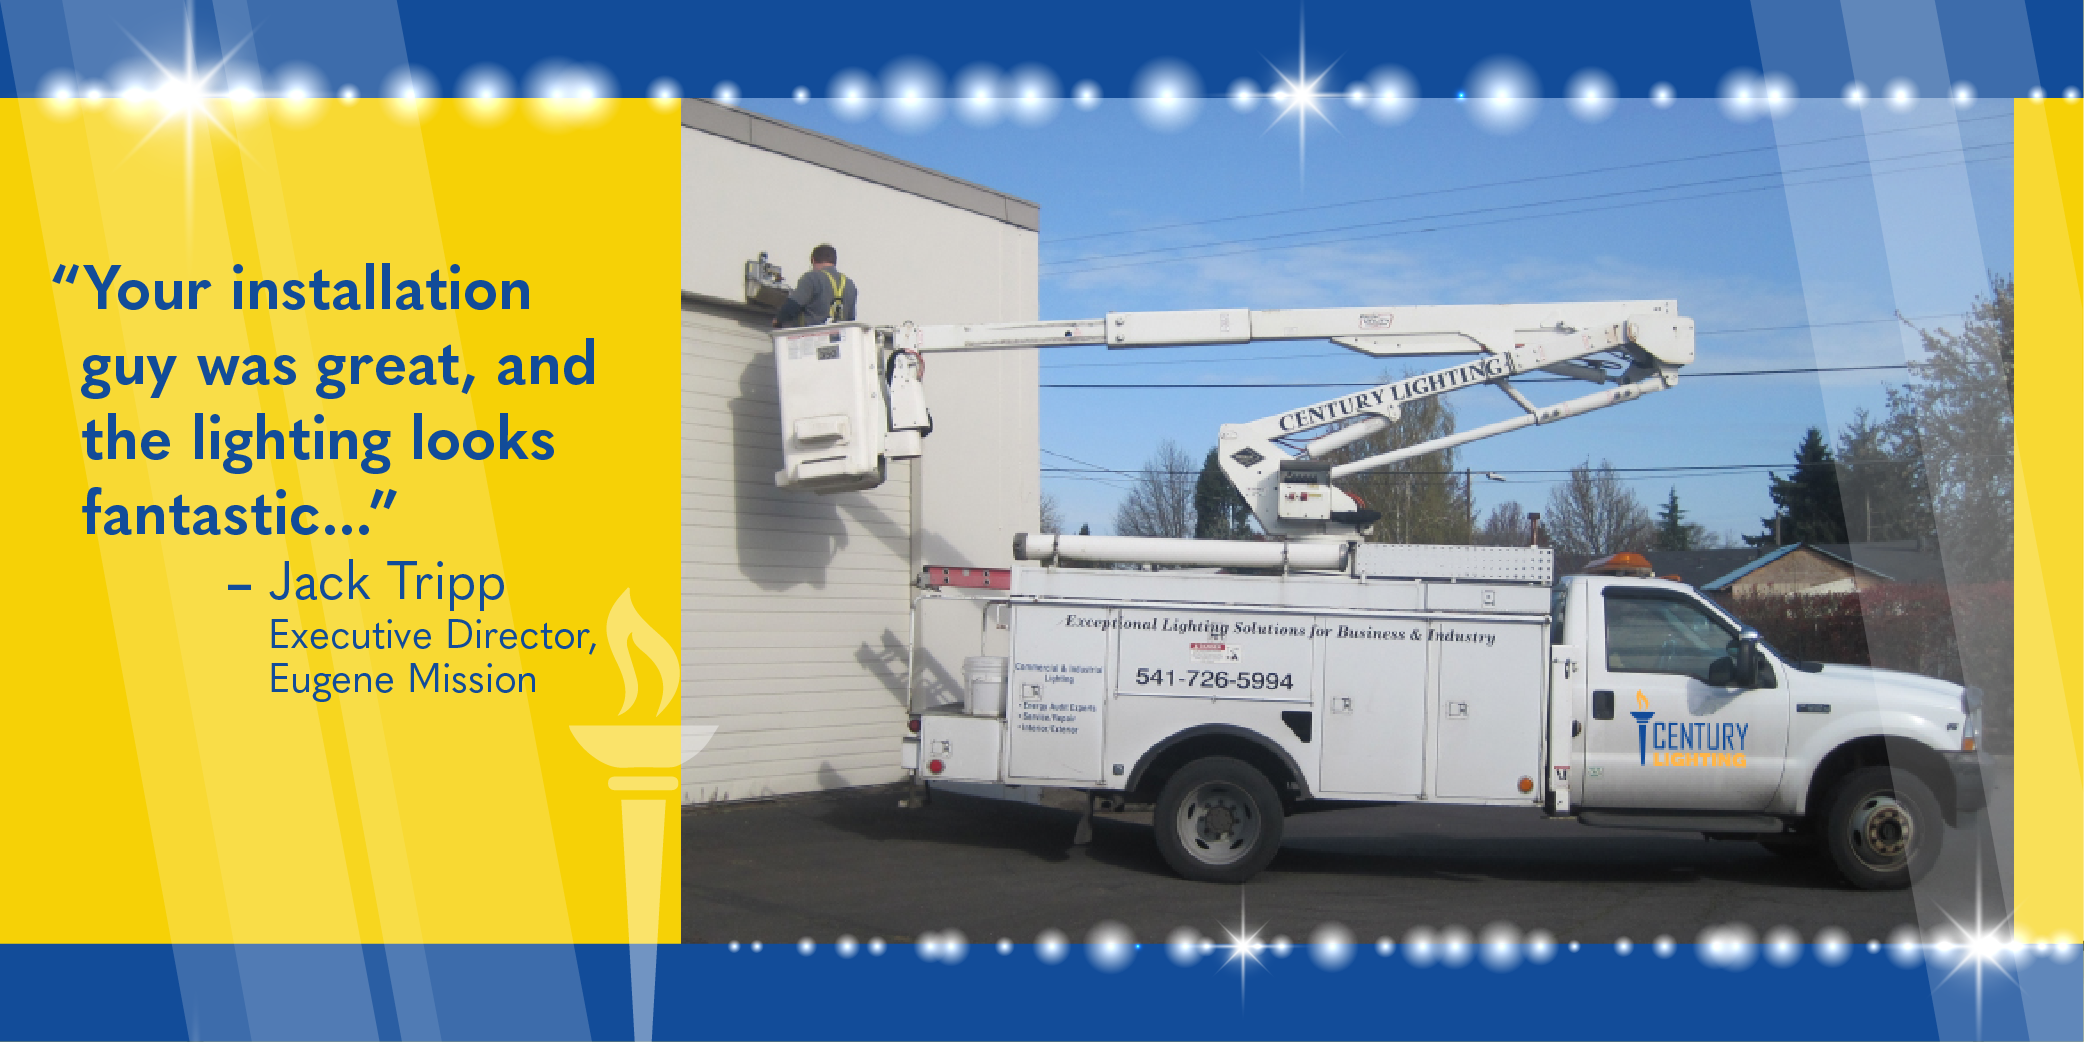 Century Lighting, Springfield, Eugene, Oregon, LED experts, energy audits, services,